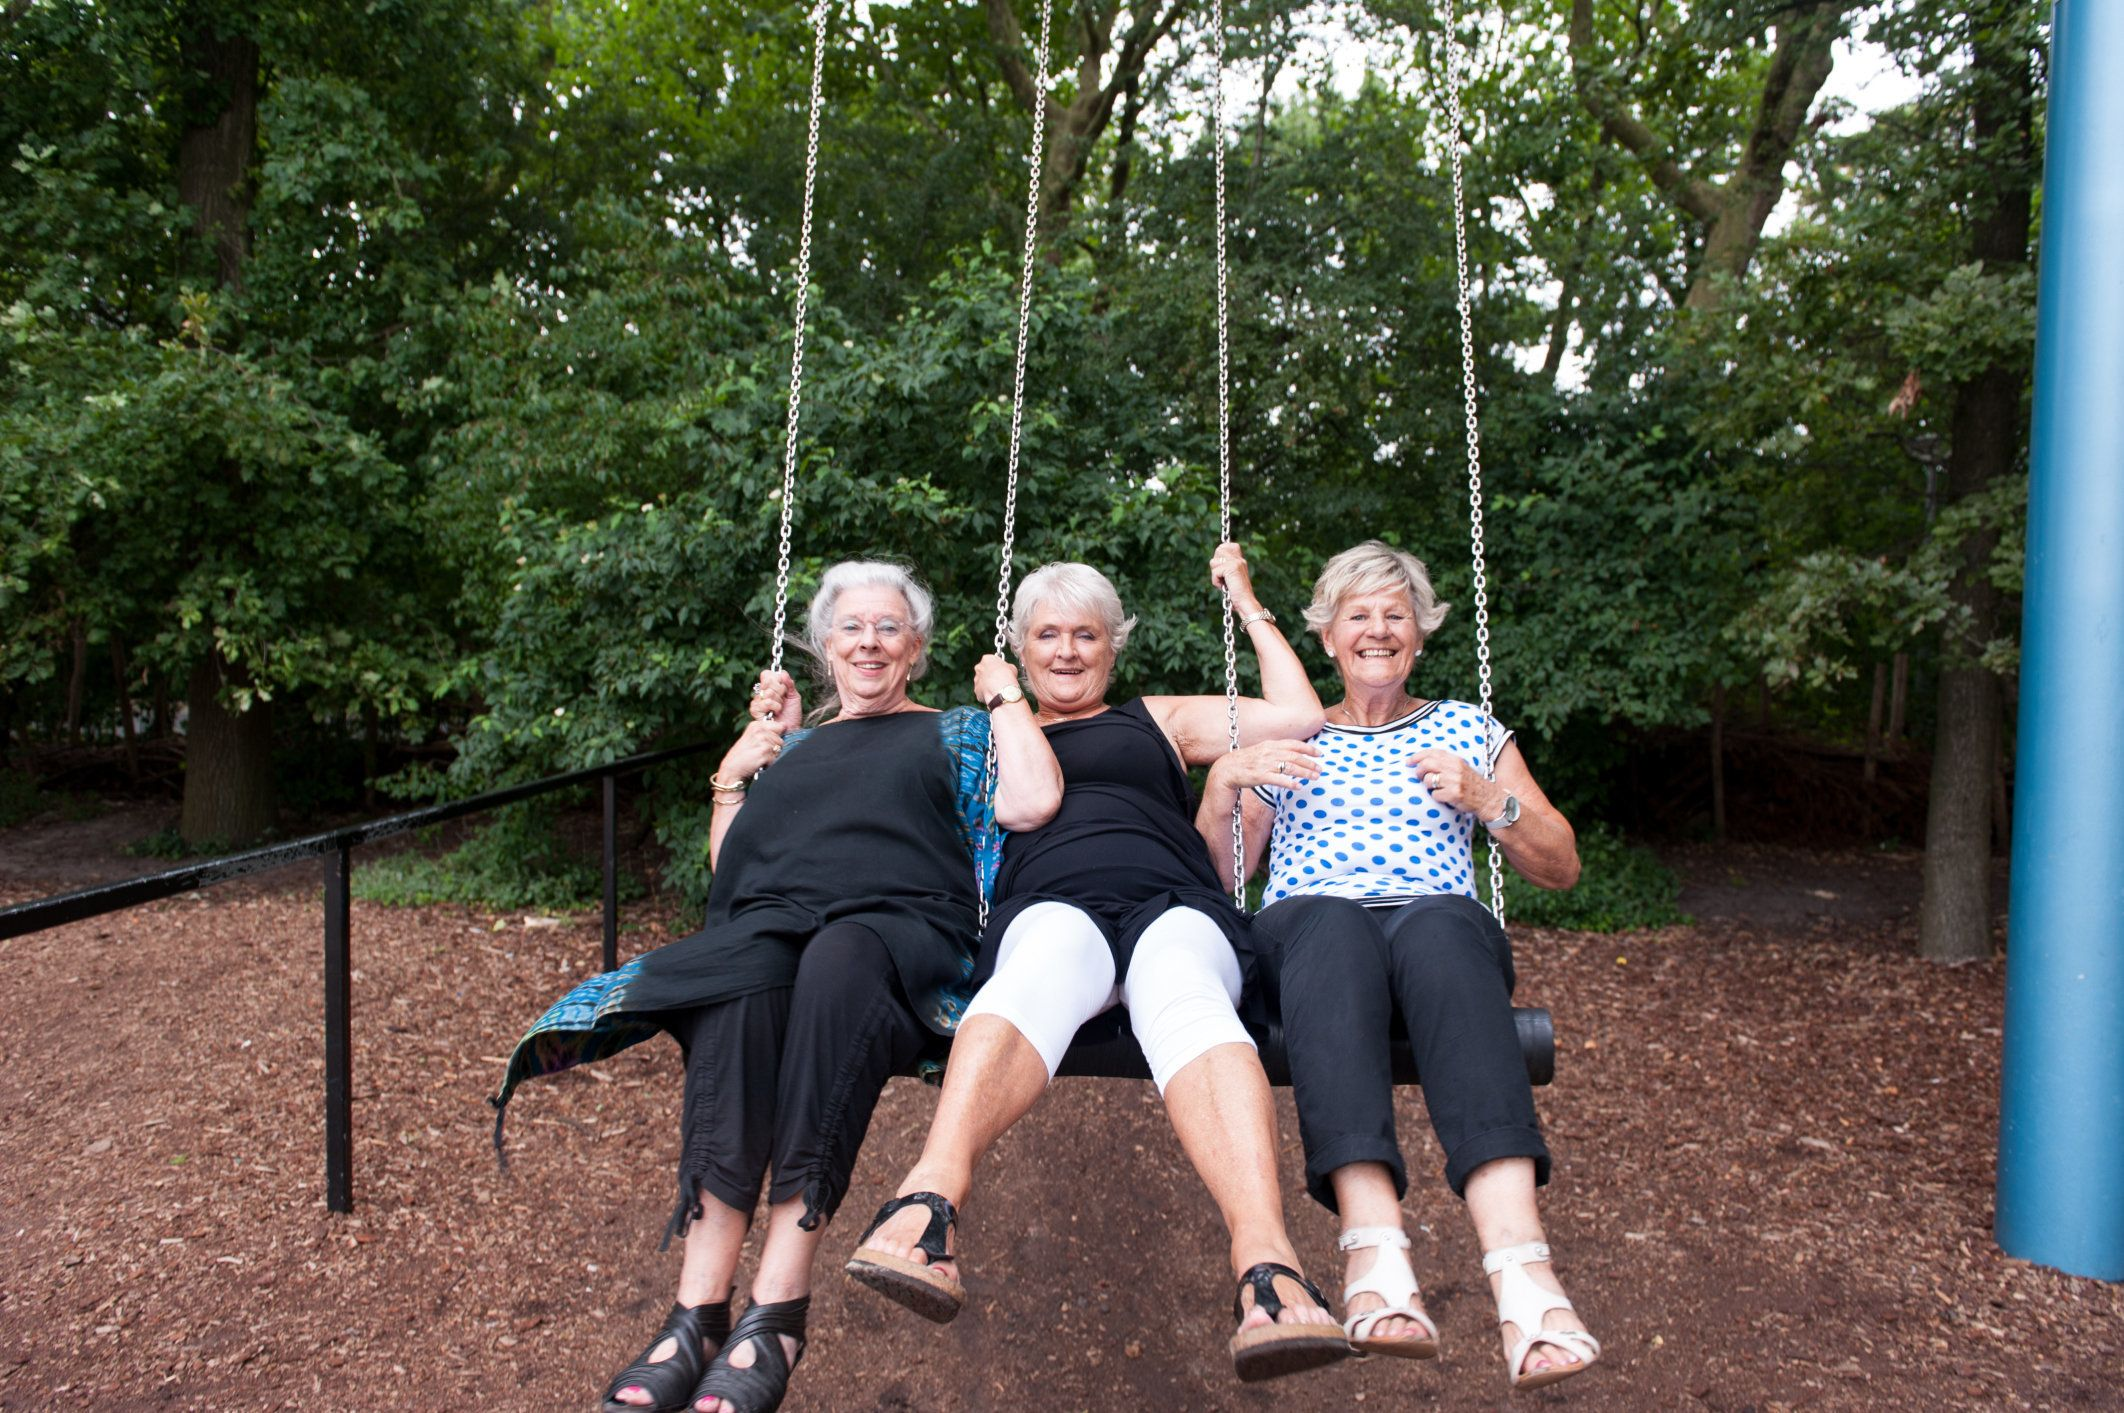 Large swing for three people, with three elderly girlfriends.